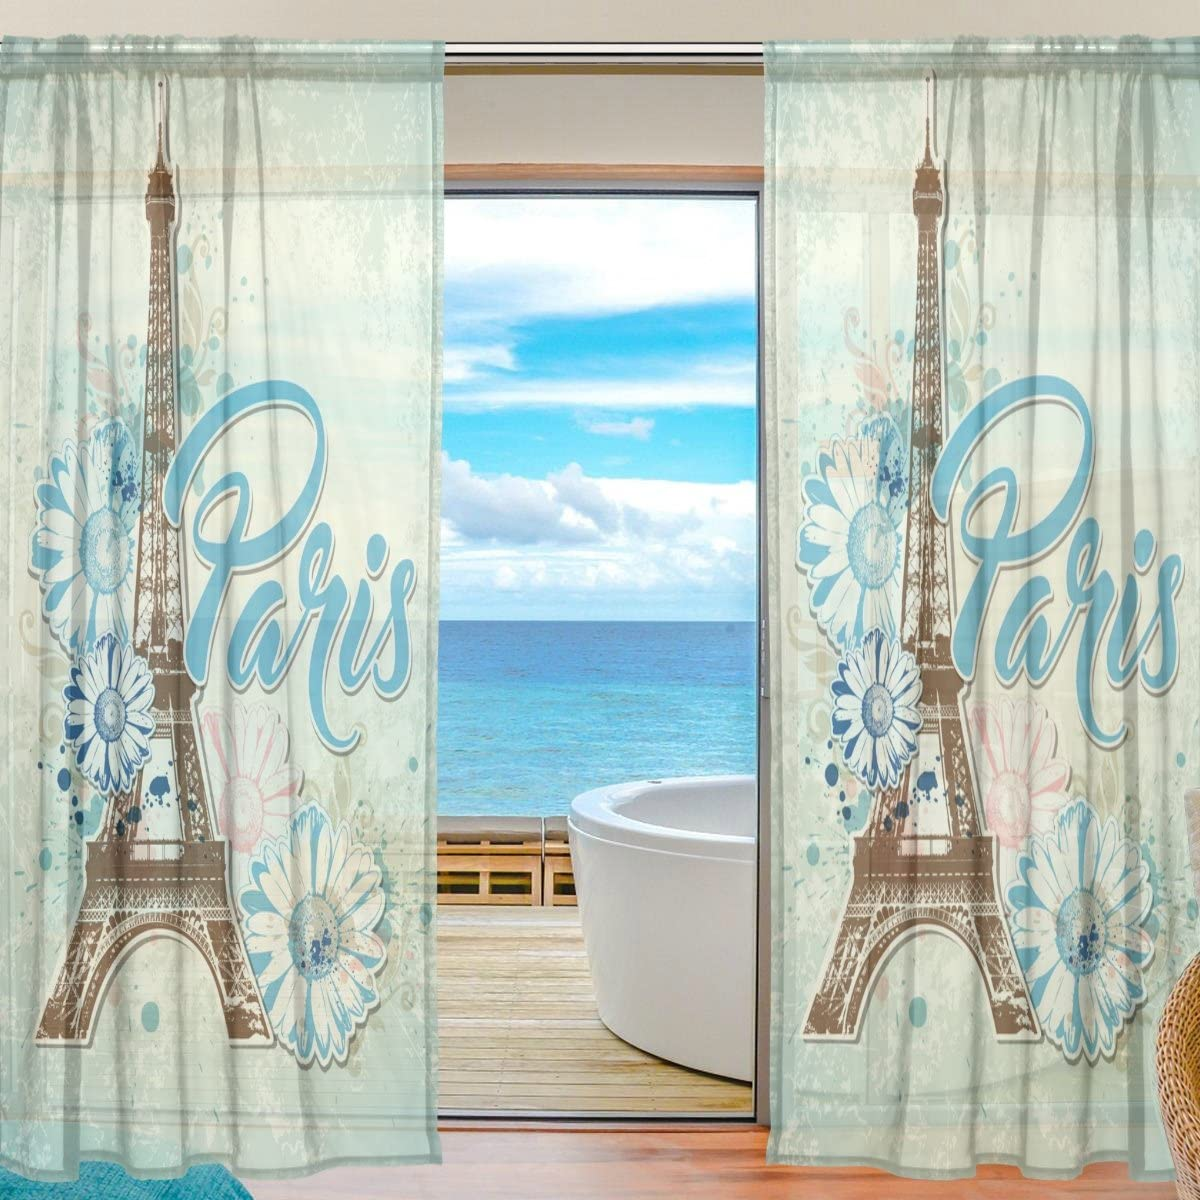 ALAZA Cooper Girl Paris Eiffel Tower Sheer Window Curtain Panel Drape 55×84 Inch for Living Room Bedroom Kids Room 2 Piece